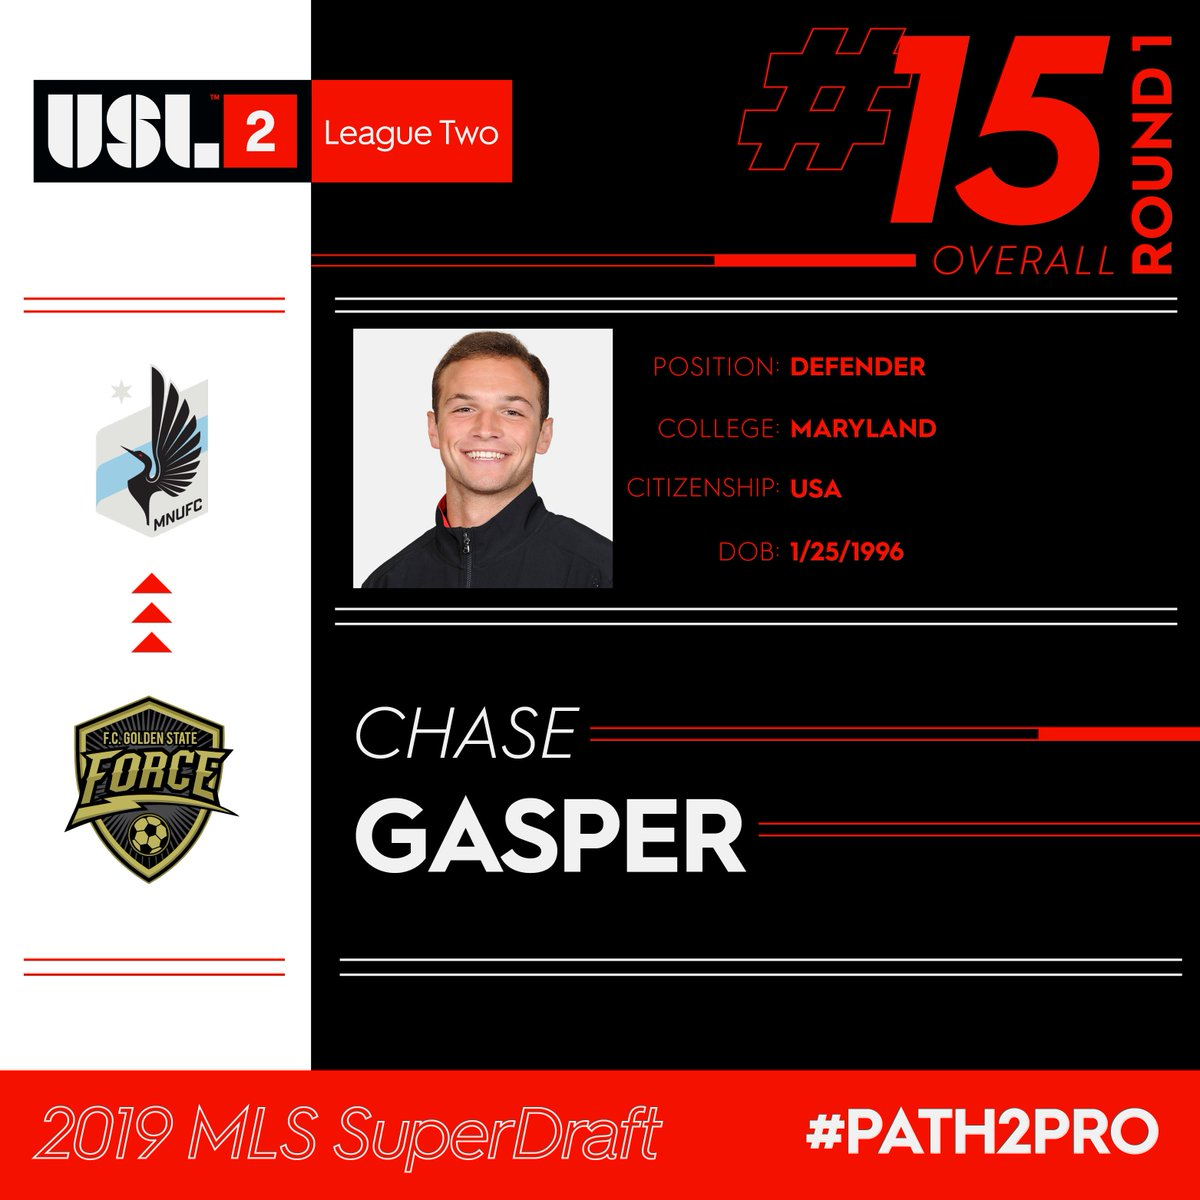 USL League Two's photo on Chase Gasper